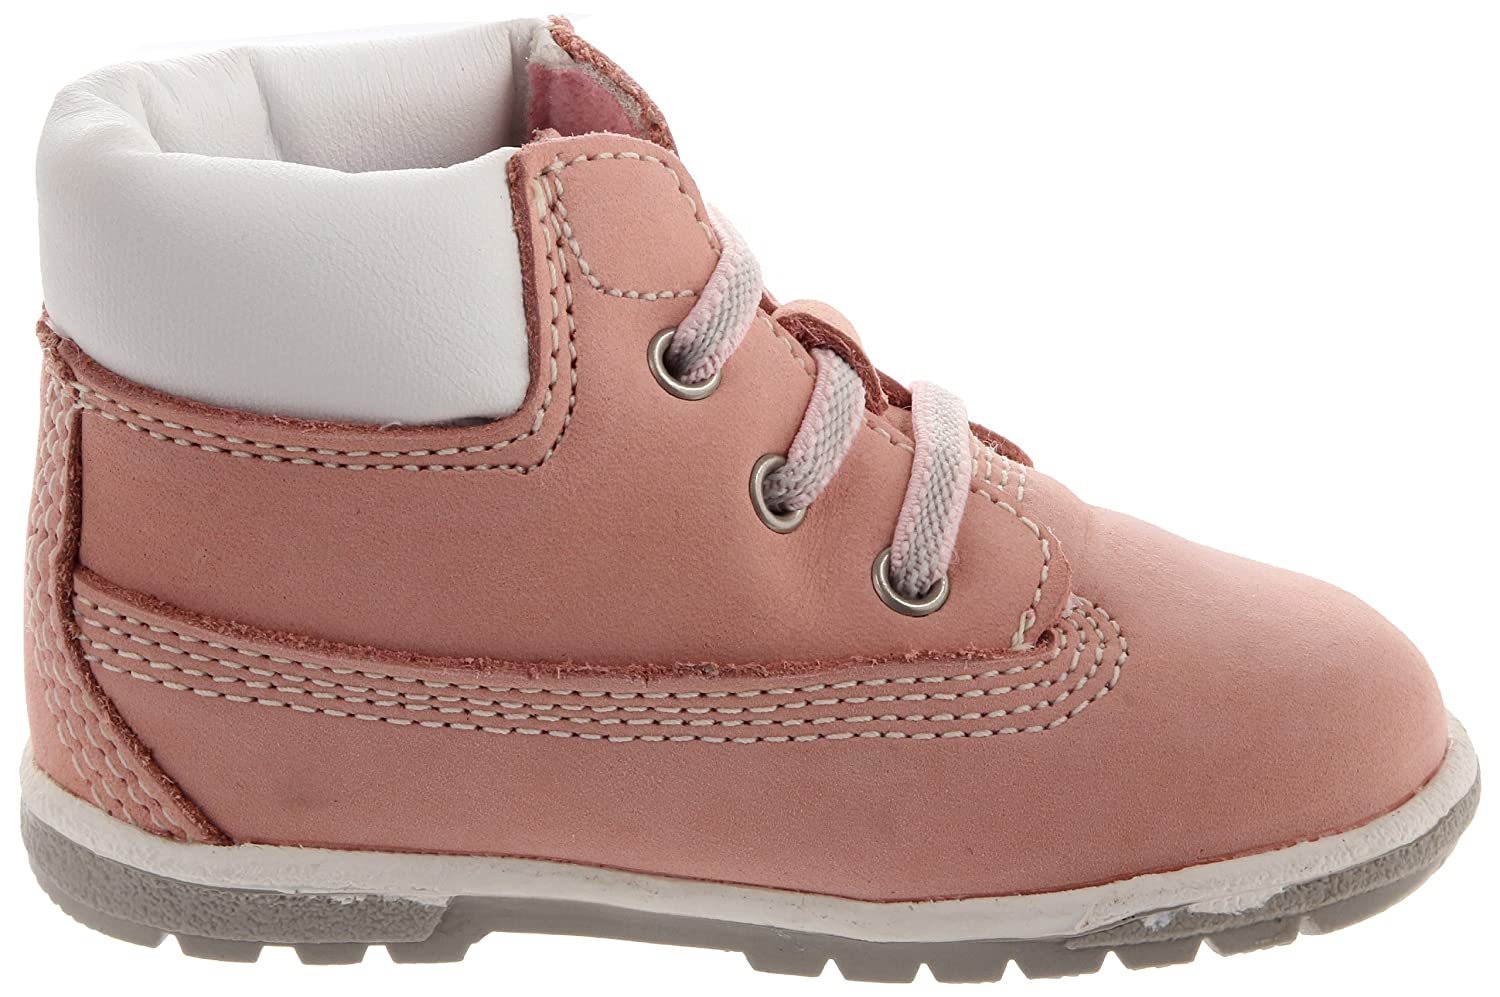 Bottes Timberland Pour Les Filles Taille 12 mZqw8